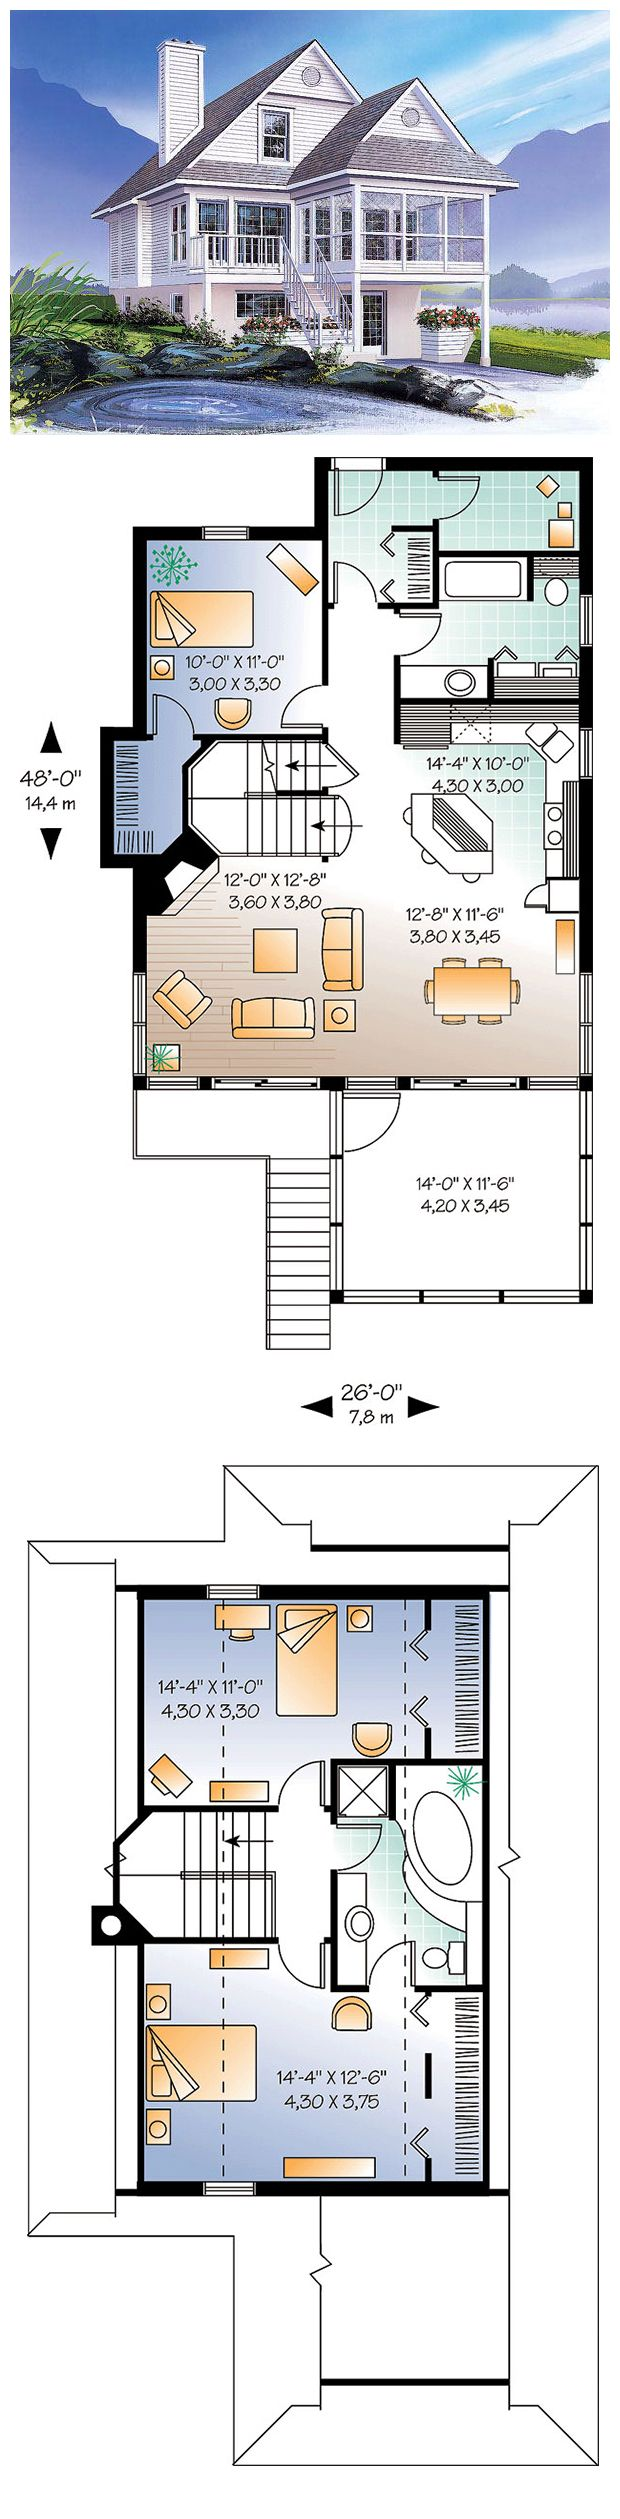 House Plan 65000 | Total living area: 1484 sq ft, 3 bedrooms & 2 bathrooms. Fireplace, abundant windows, screened porch, built-ins & wood burning fireplace. #coastalhome #houseplan